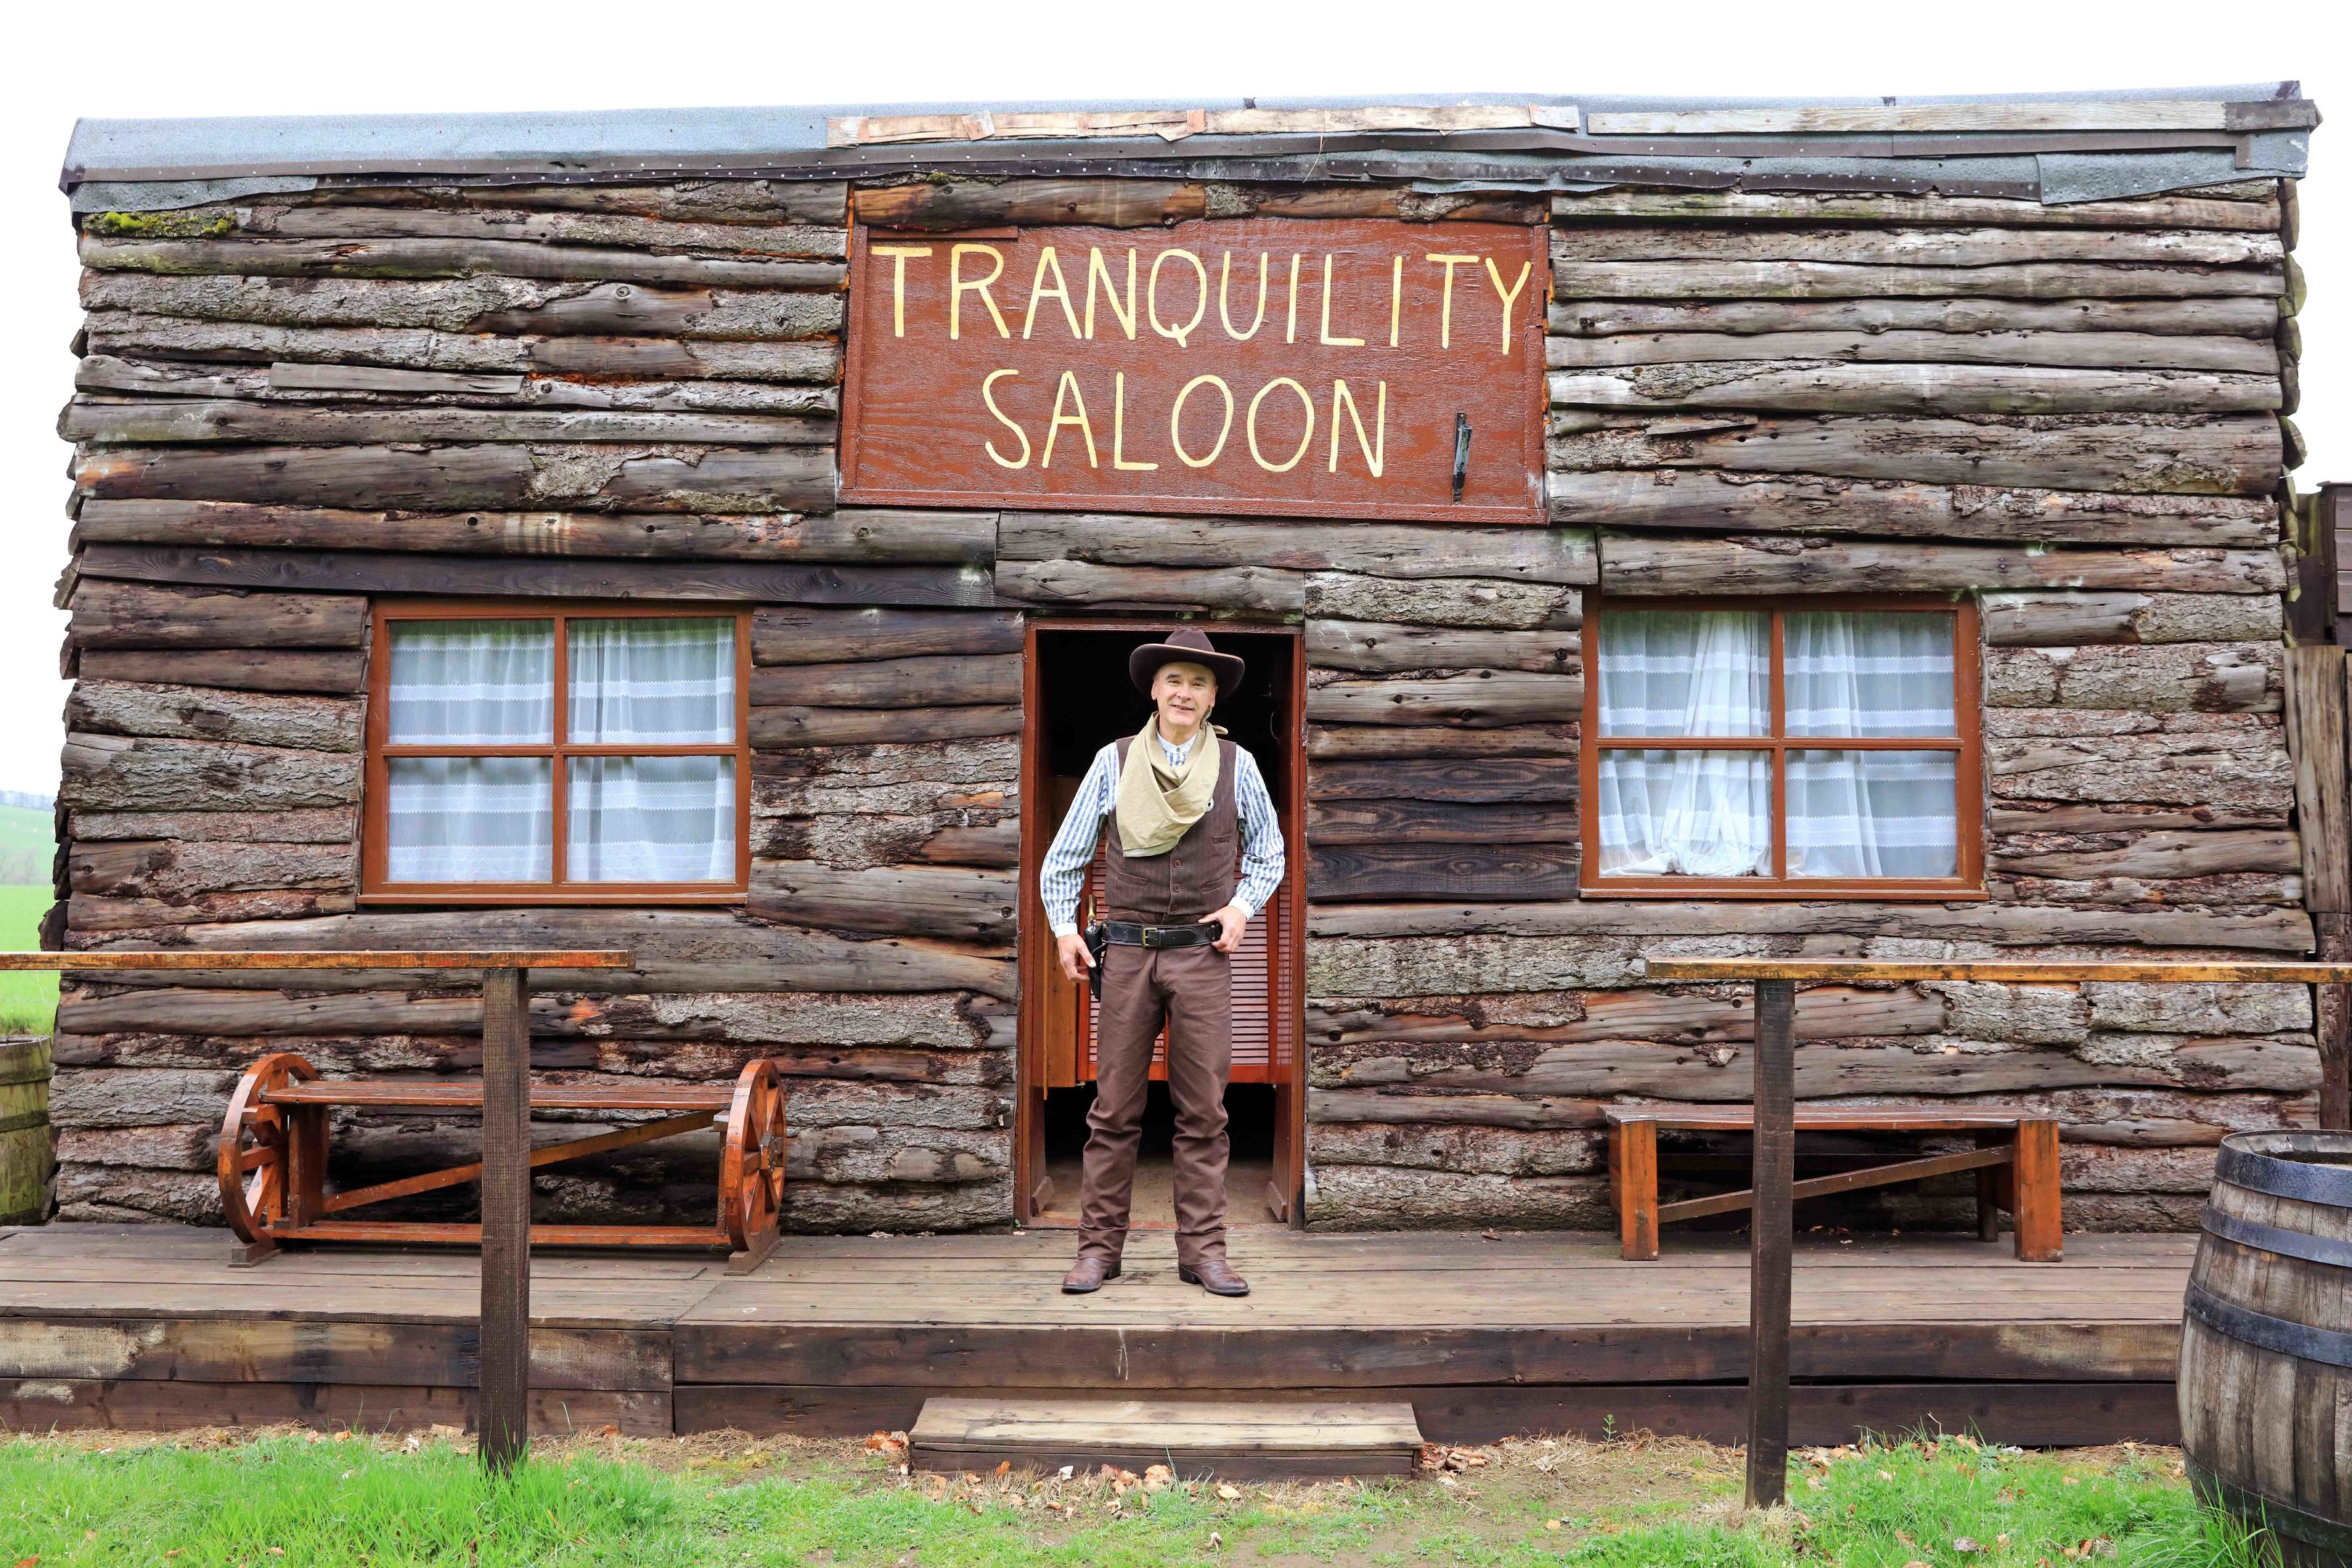 Tranquillity Saloon (Oliver Dixon/Imagewise)